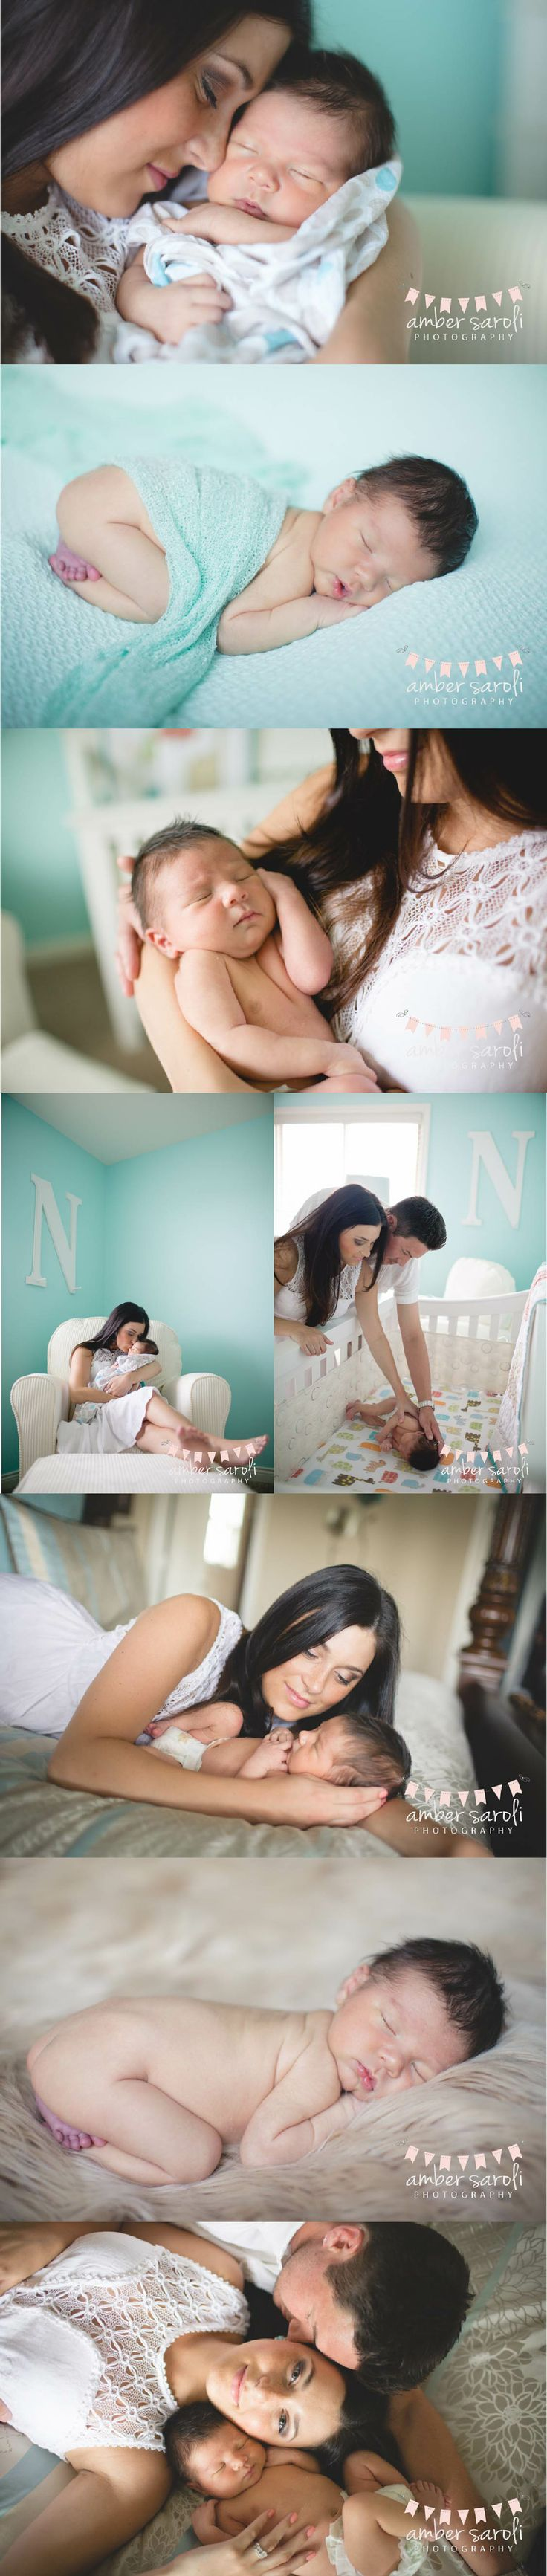 Wedding & Lifestyle Photographer-Amber Saroli Photography #newborn #family #photography #macomb #portaits #mom #dad #baby #love #teal #home #session